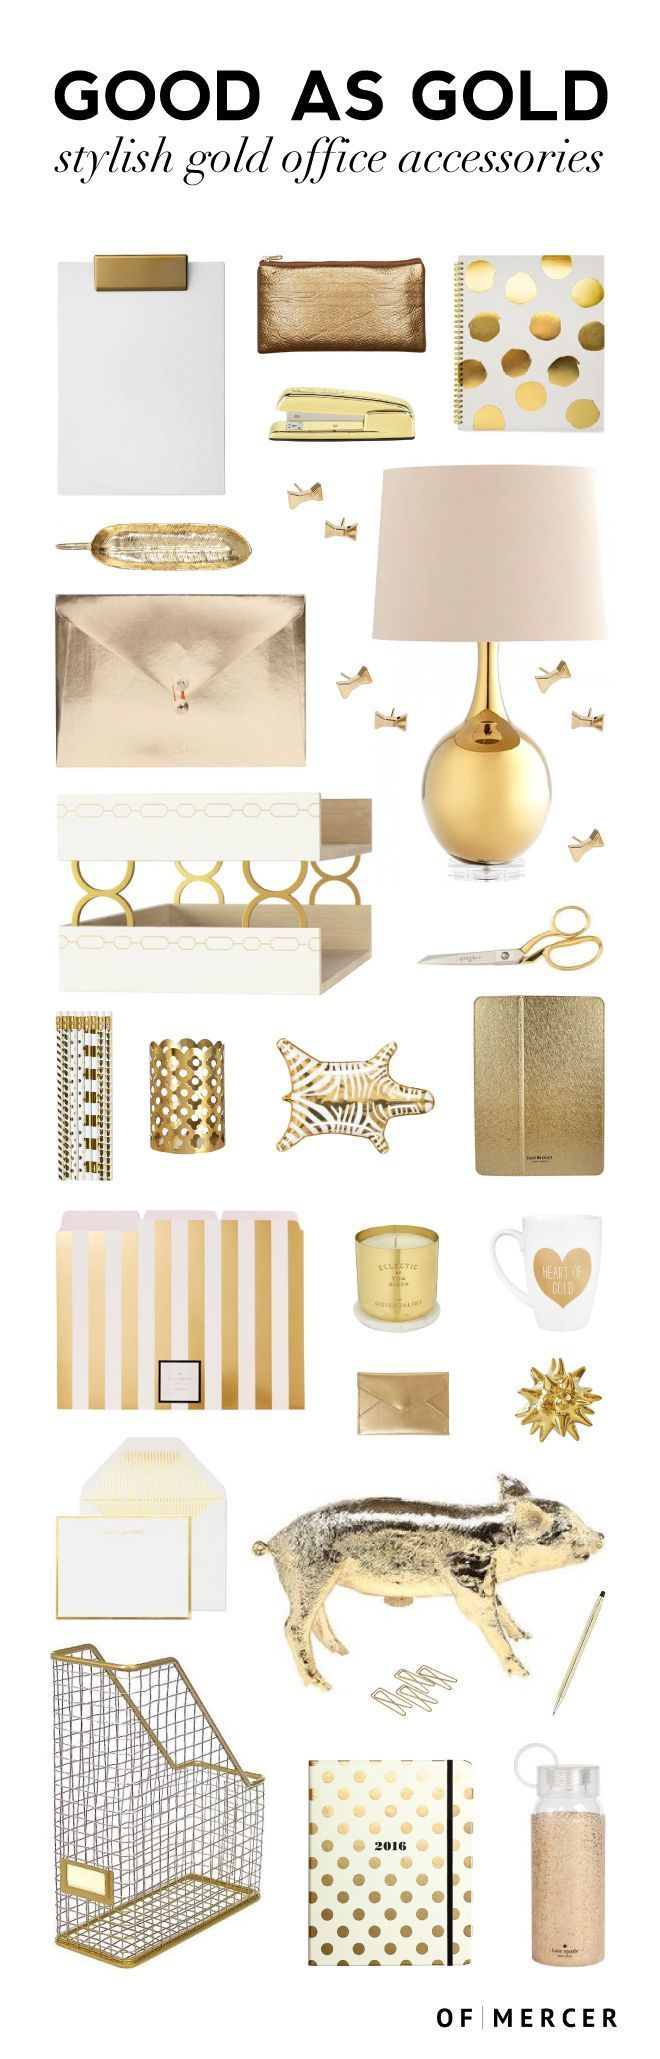 Good As Gold Stylish Office Accessories Home Decor From Pepi